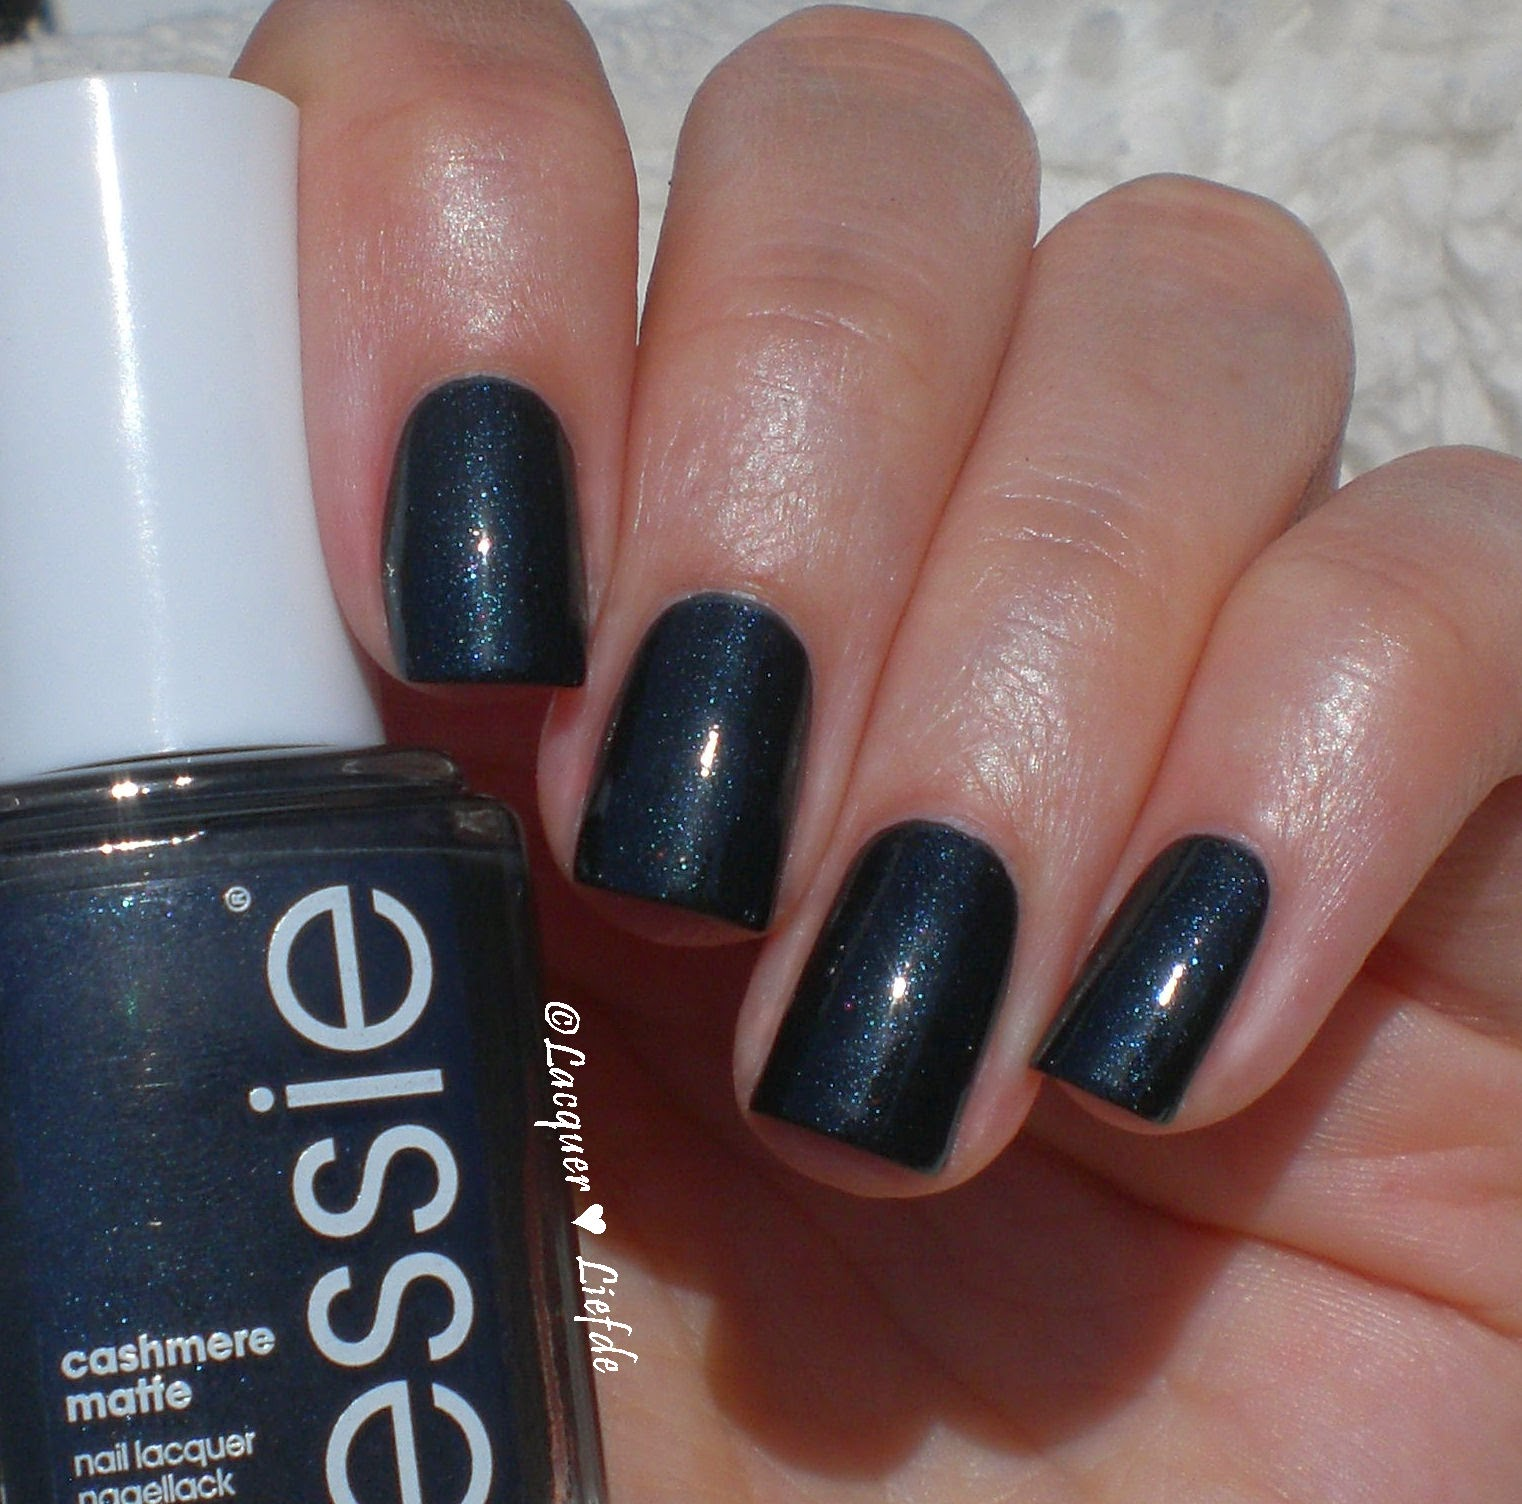 Cashmere Matte Collection - Spun in Luxe